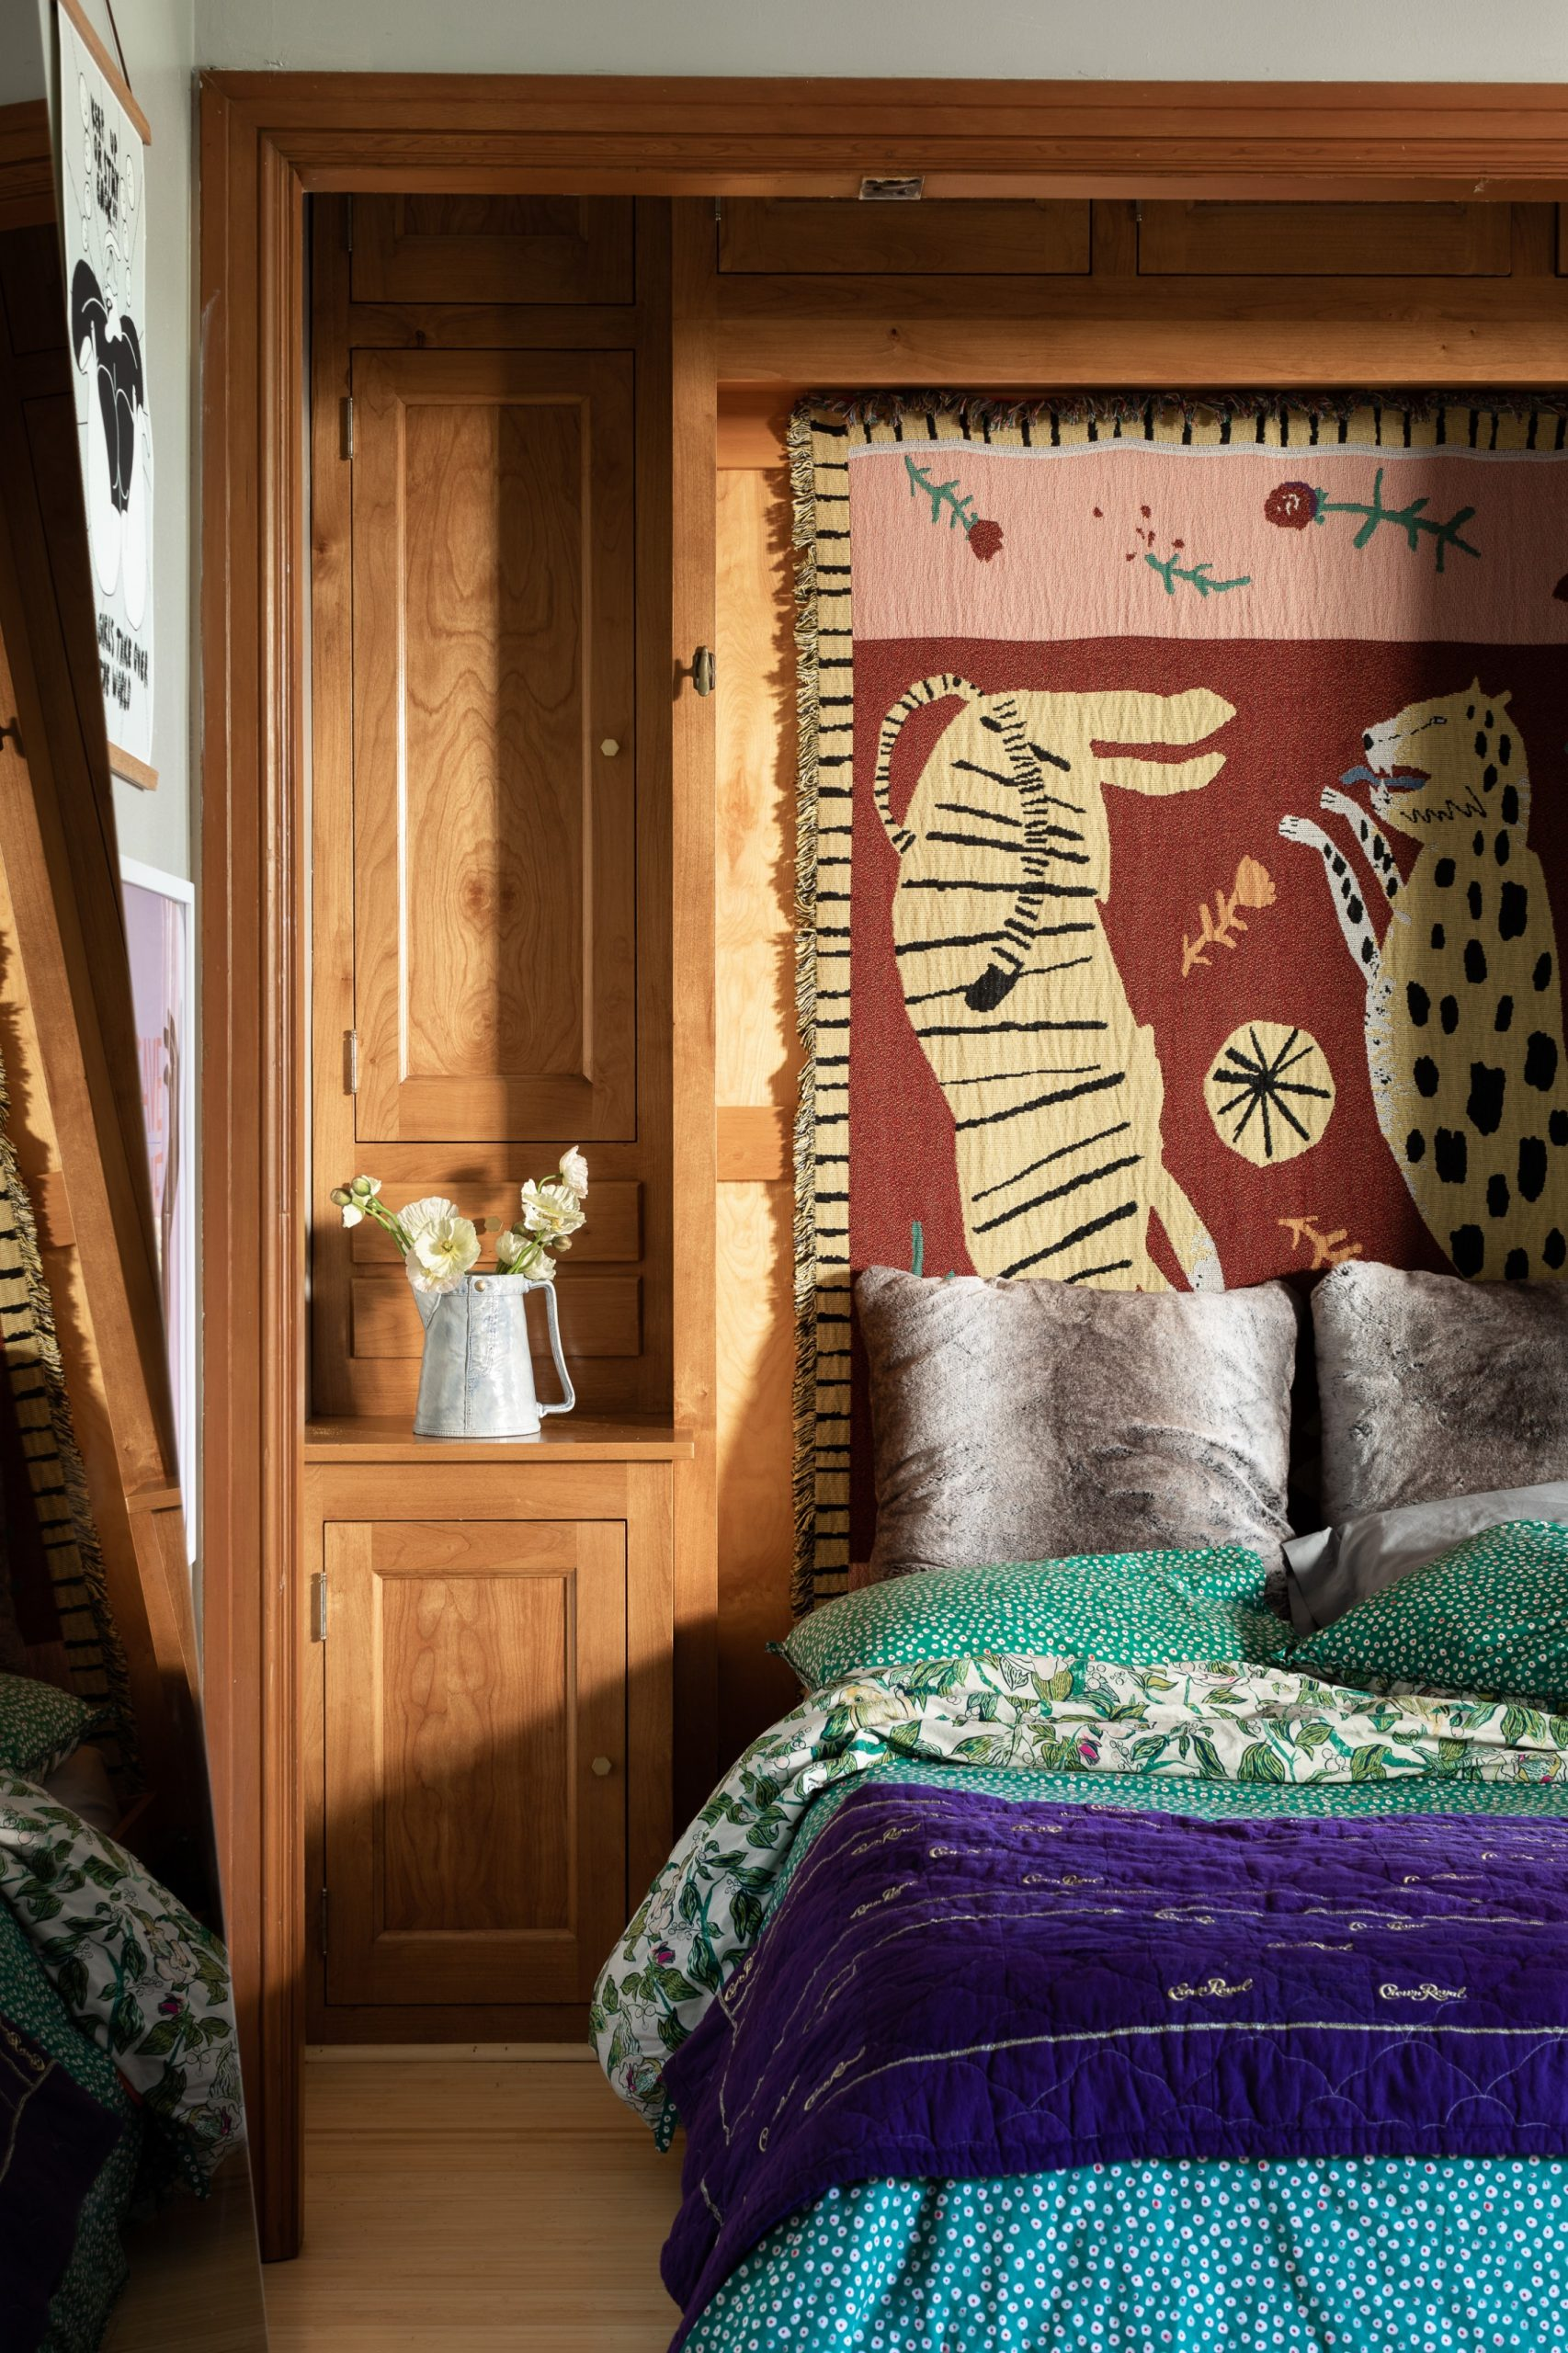 8 Small Bedroom Ideas - How to Decorate a Small Bedroom  - Bedroom Ideas Apartment Therapy